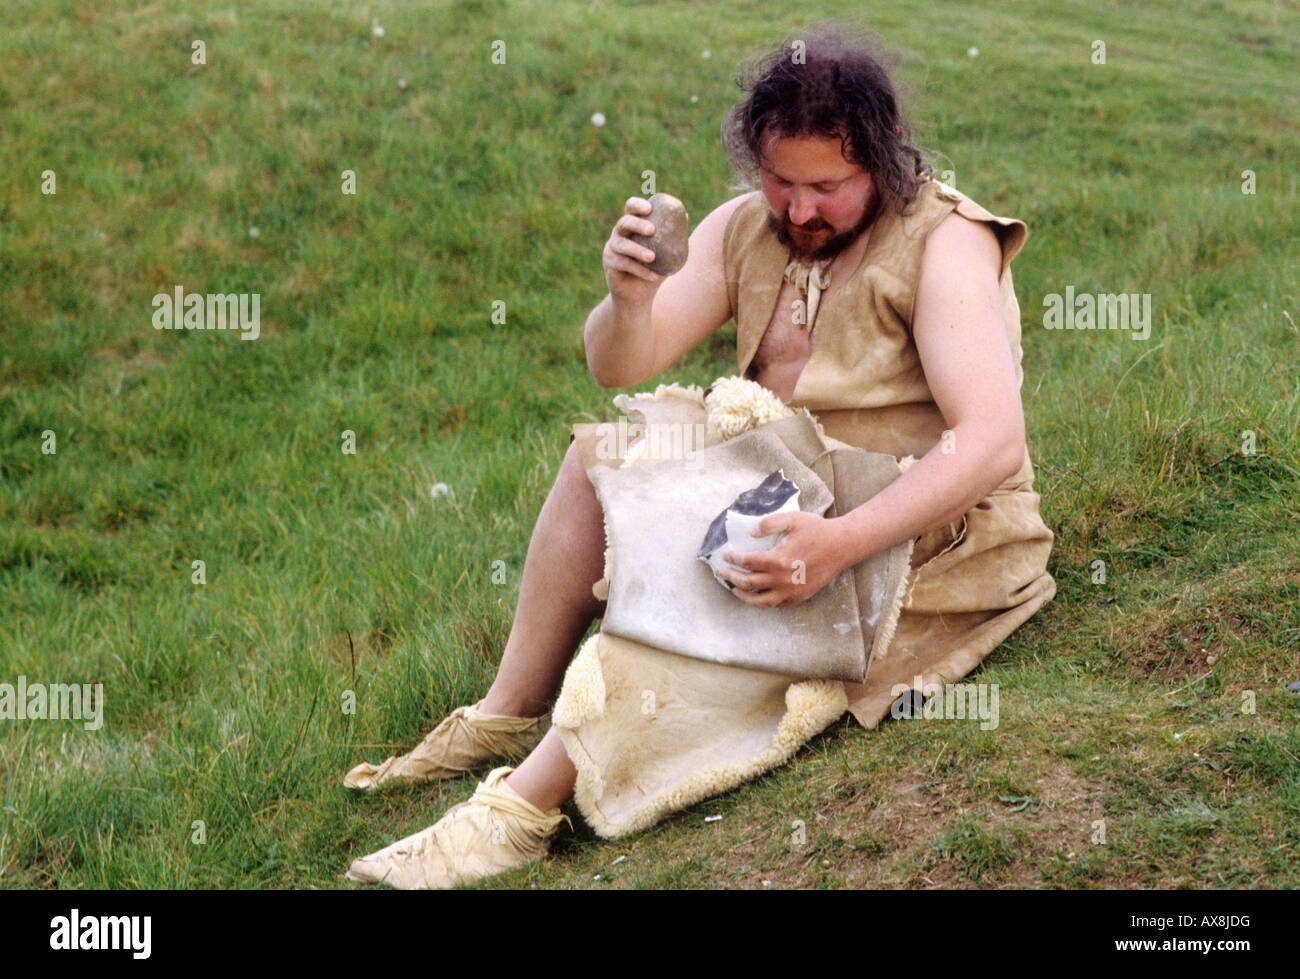 Flint Knapping re enactment Stone Age man Grimes graves Norfolk East Anglia England UK English prehistory prehistoric - Stock Image